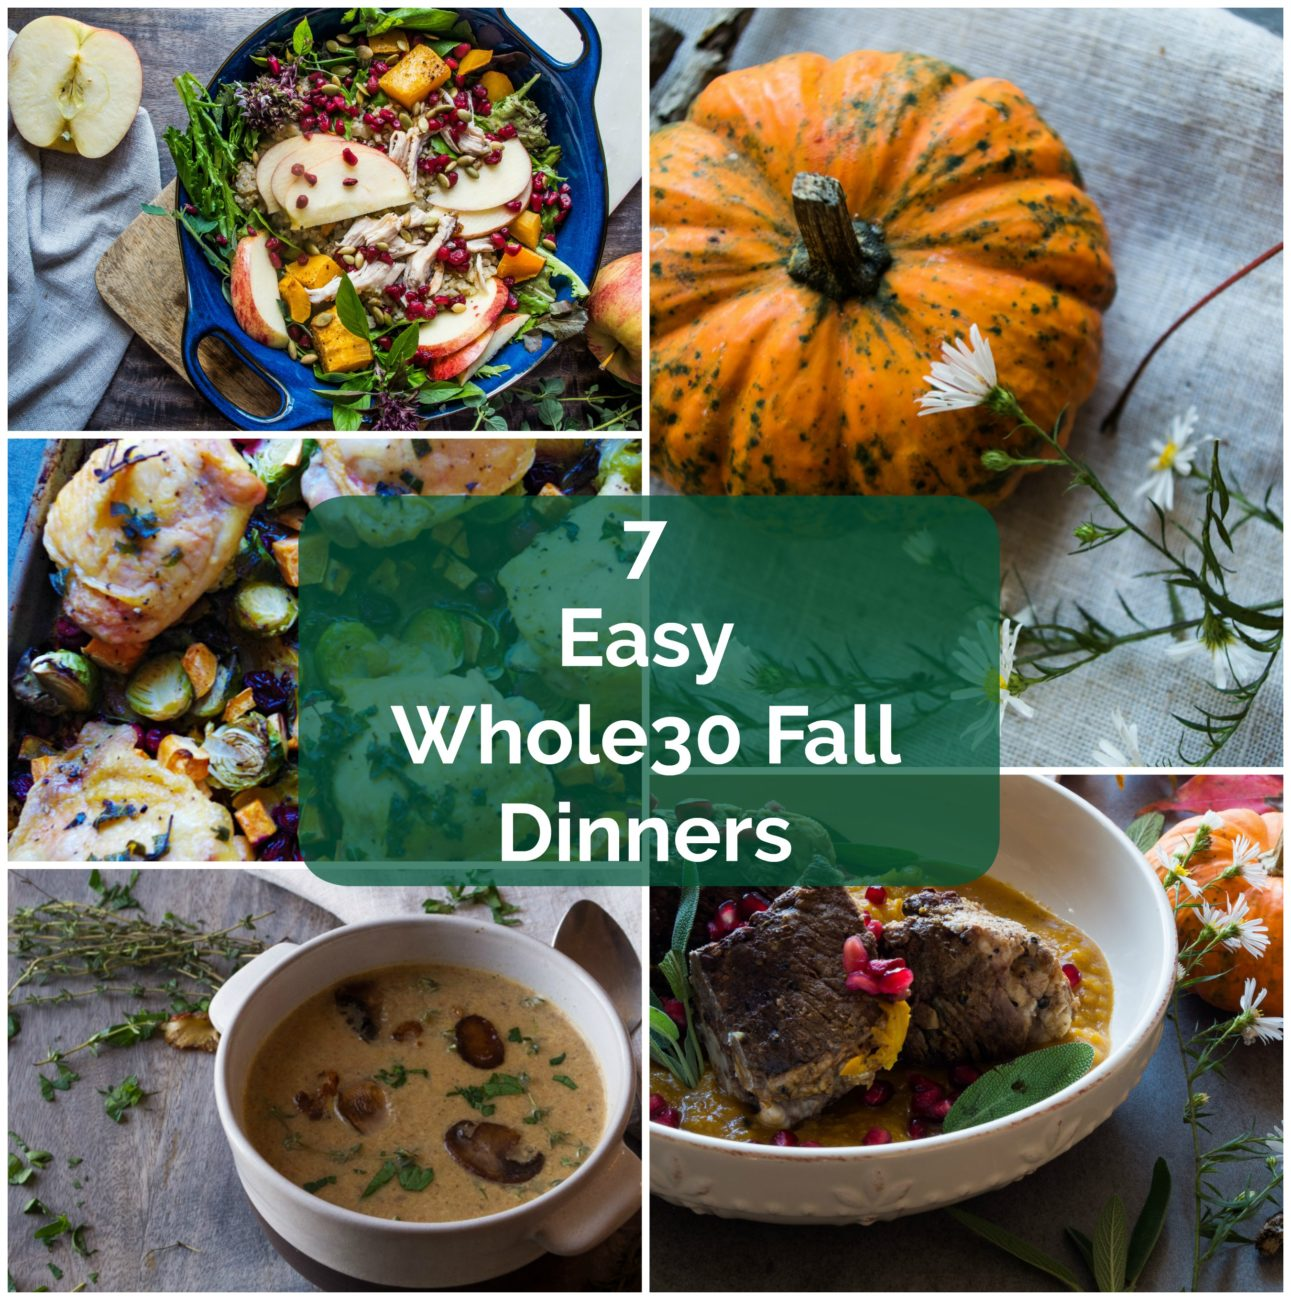 7 Easy Whole30 Fall DInners- super easy and simple Whole30 fall recipes perfect for a quick weeknight dinner!|thekitcheneer.com